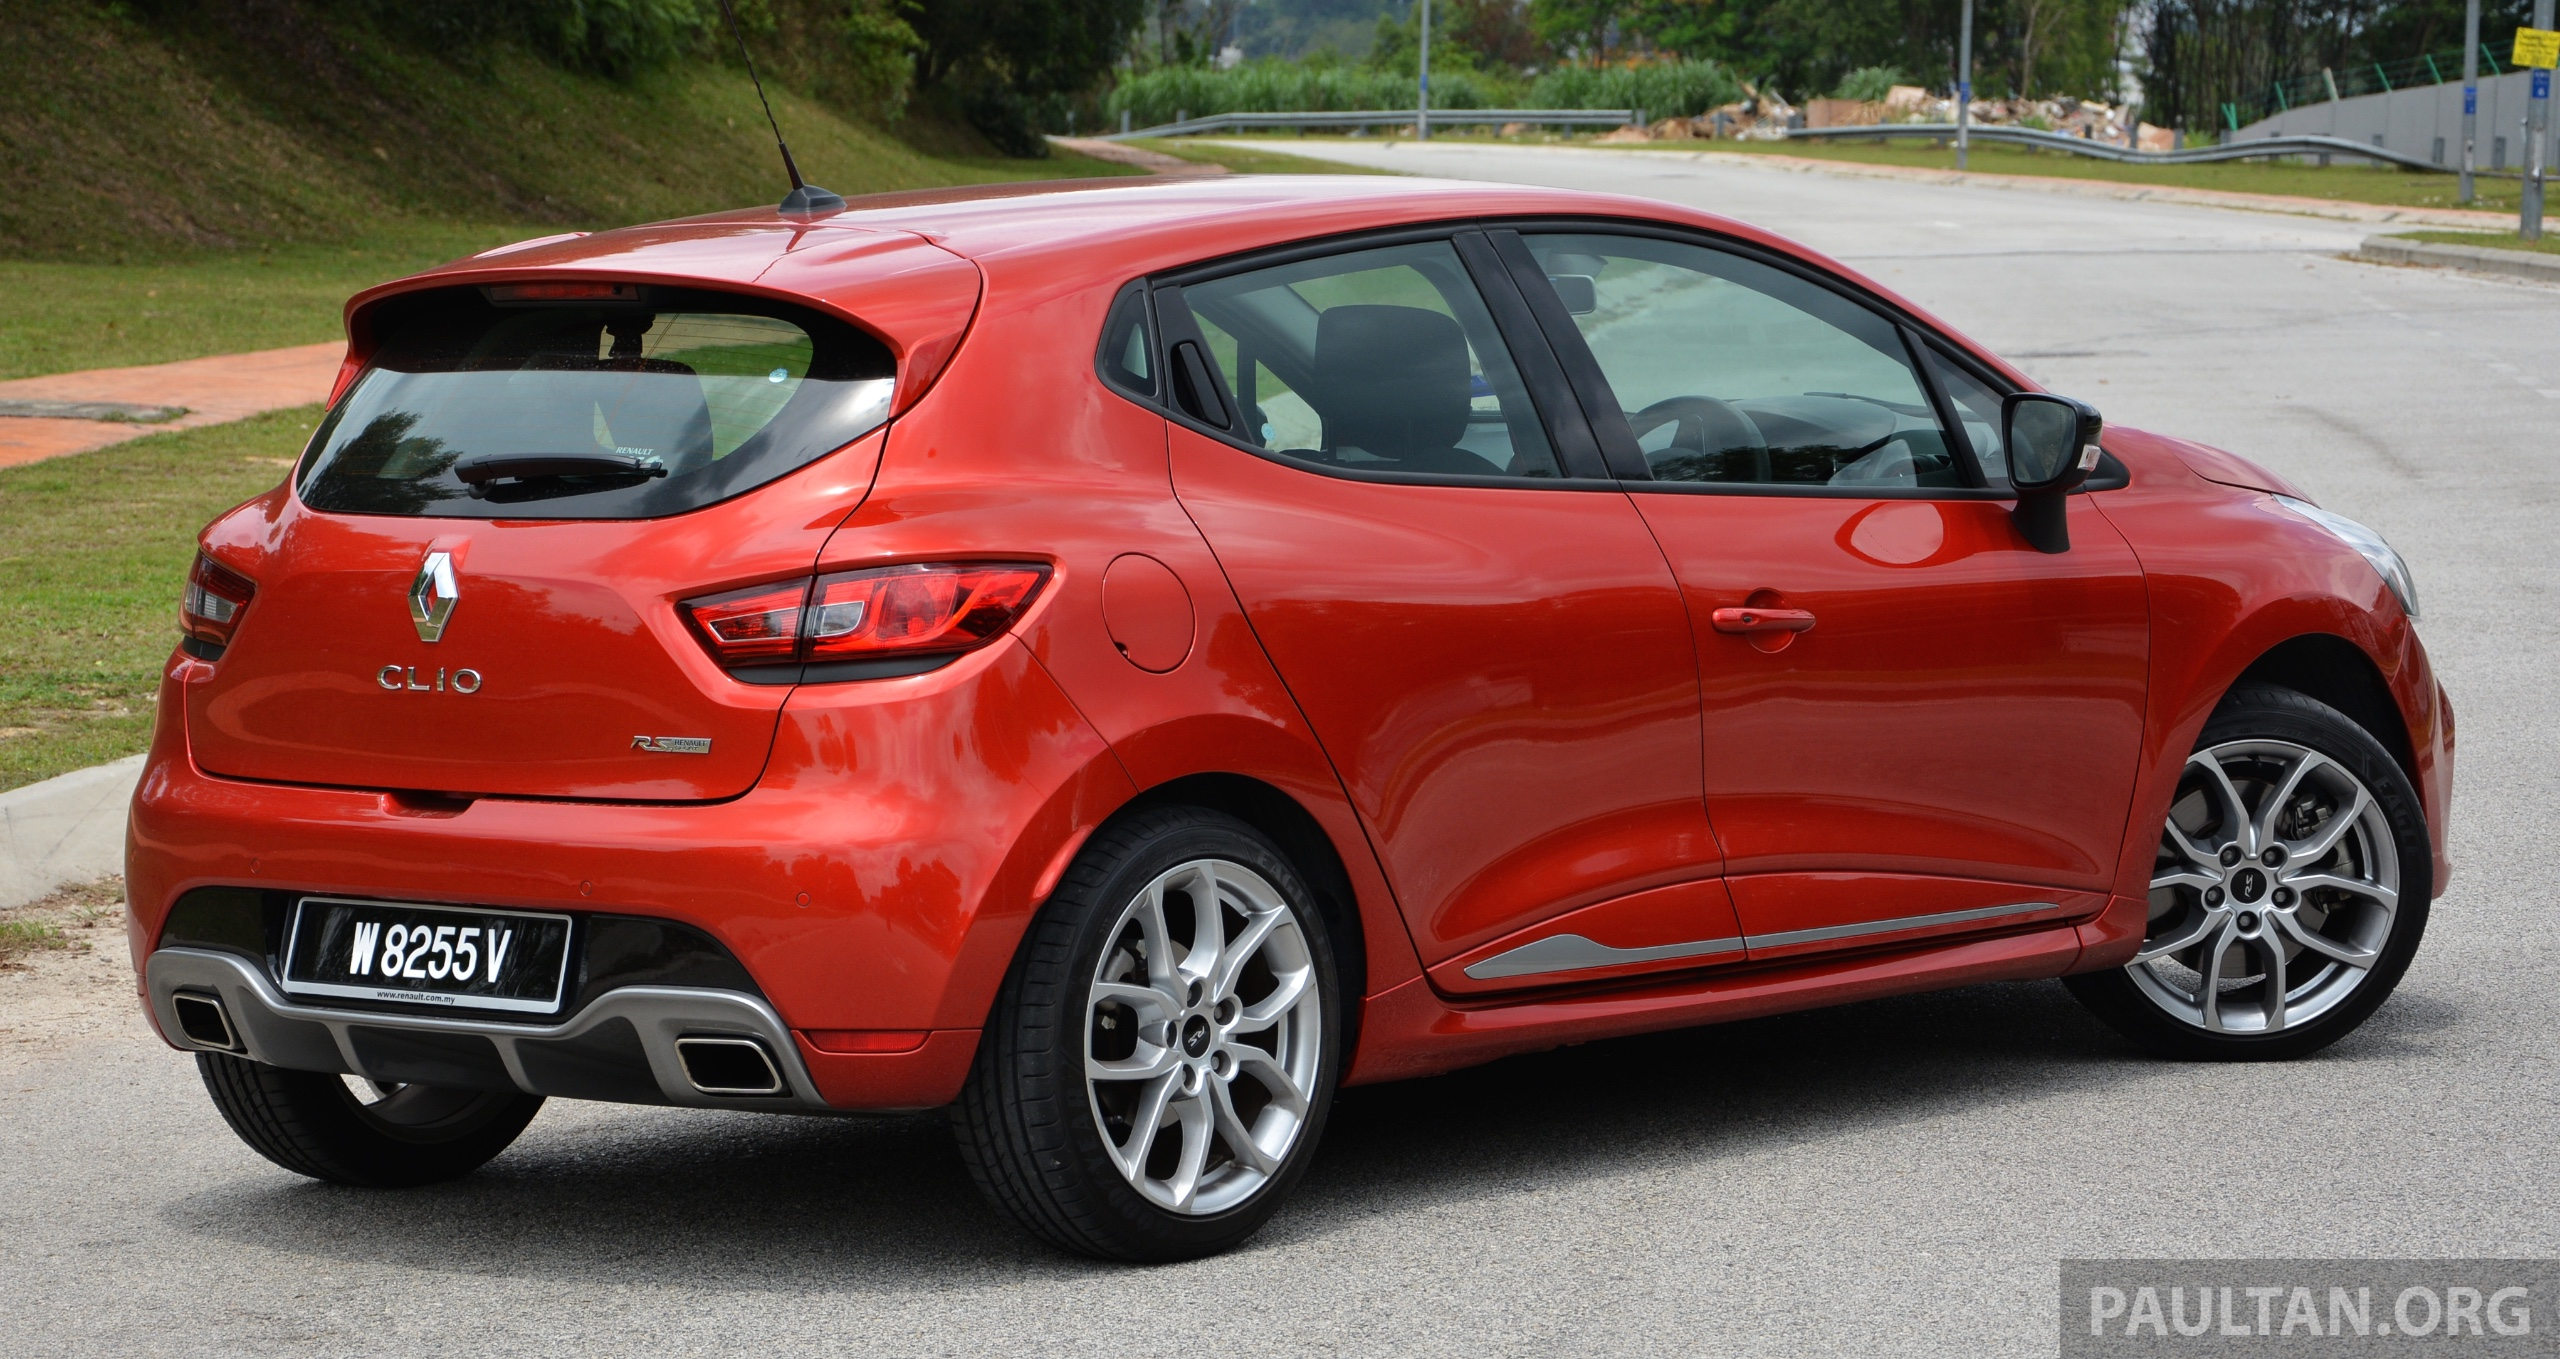 driven renault clio rs 200 edc a softer focus paul tan image 282856. Black Bedroom Furniture Sets. Home Design Ideas